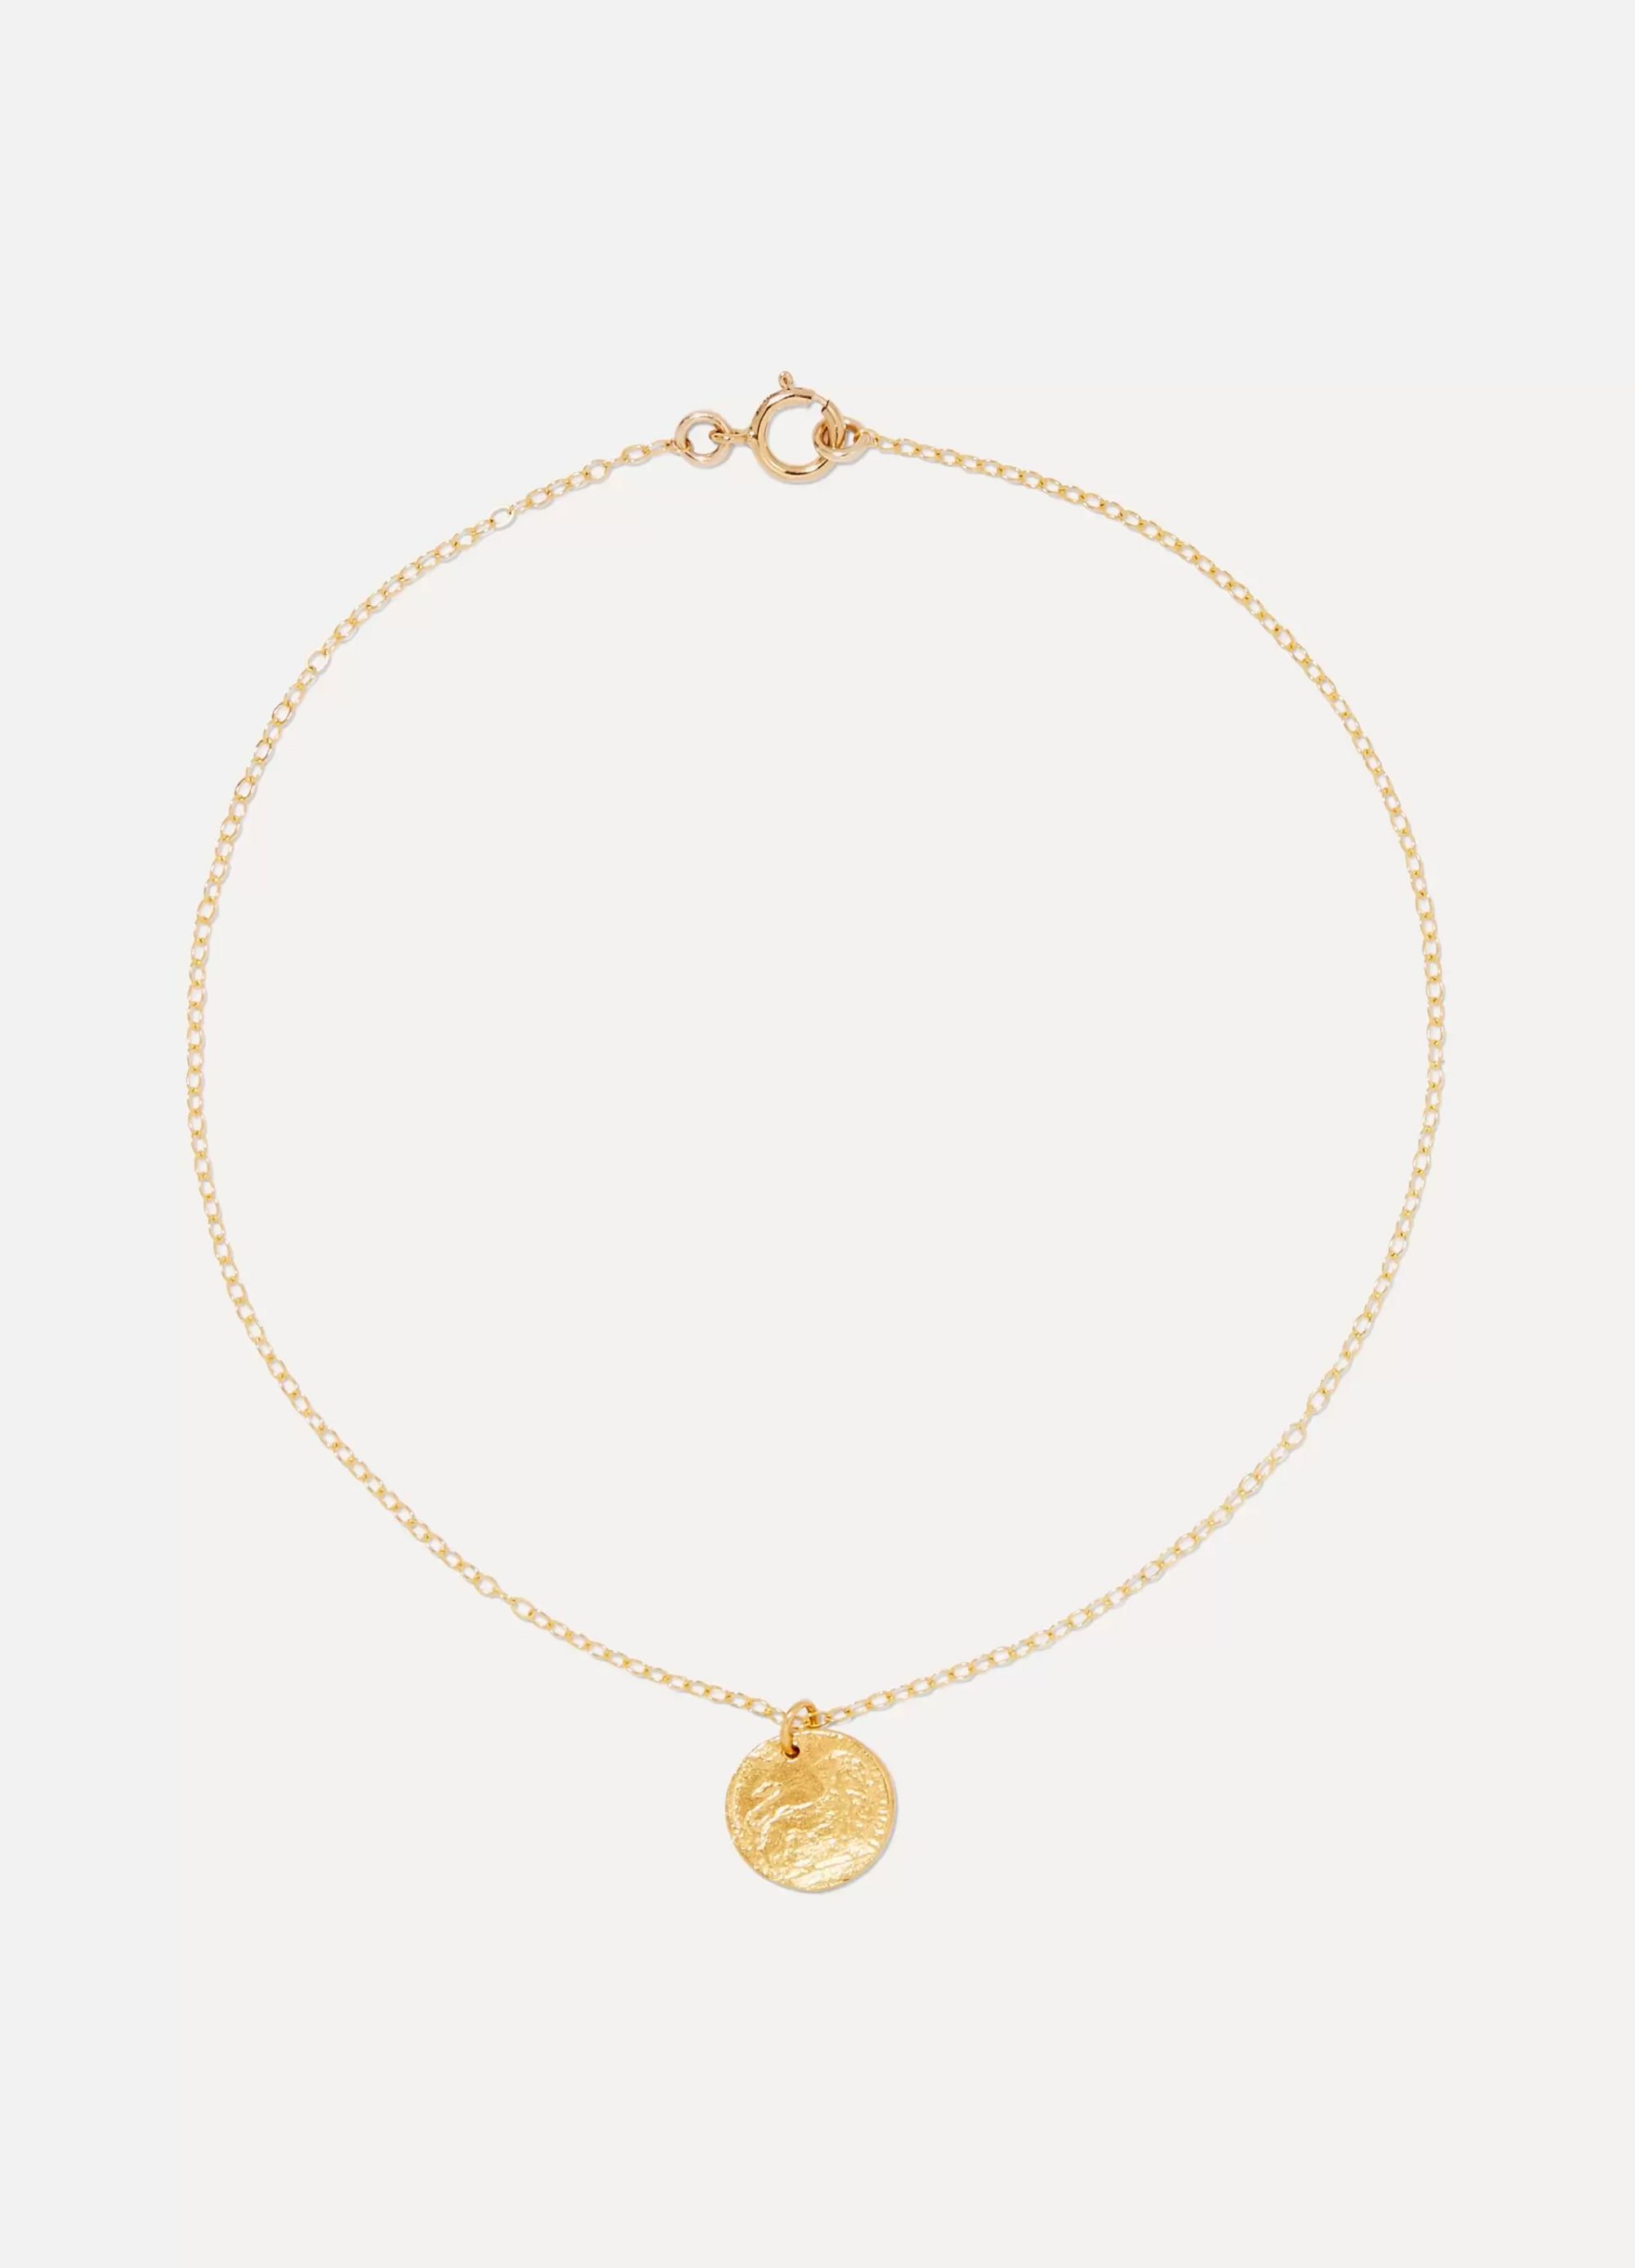 Alighieri Baby Lion gold-plated anklet